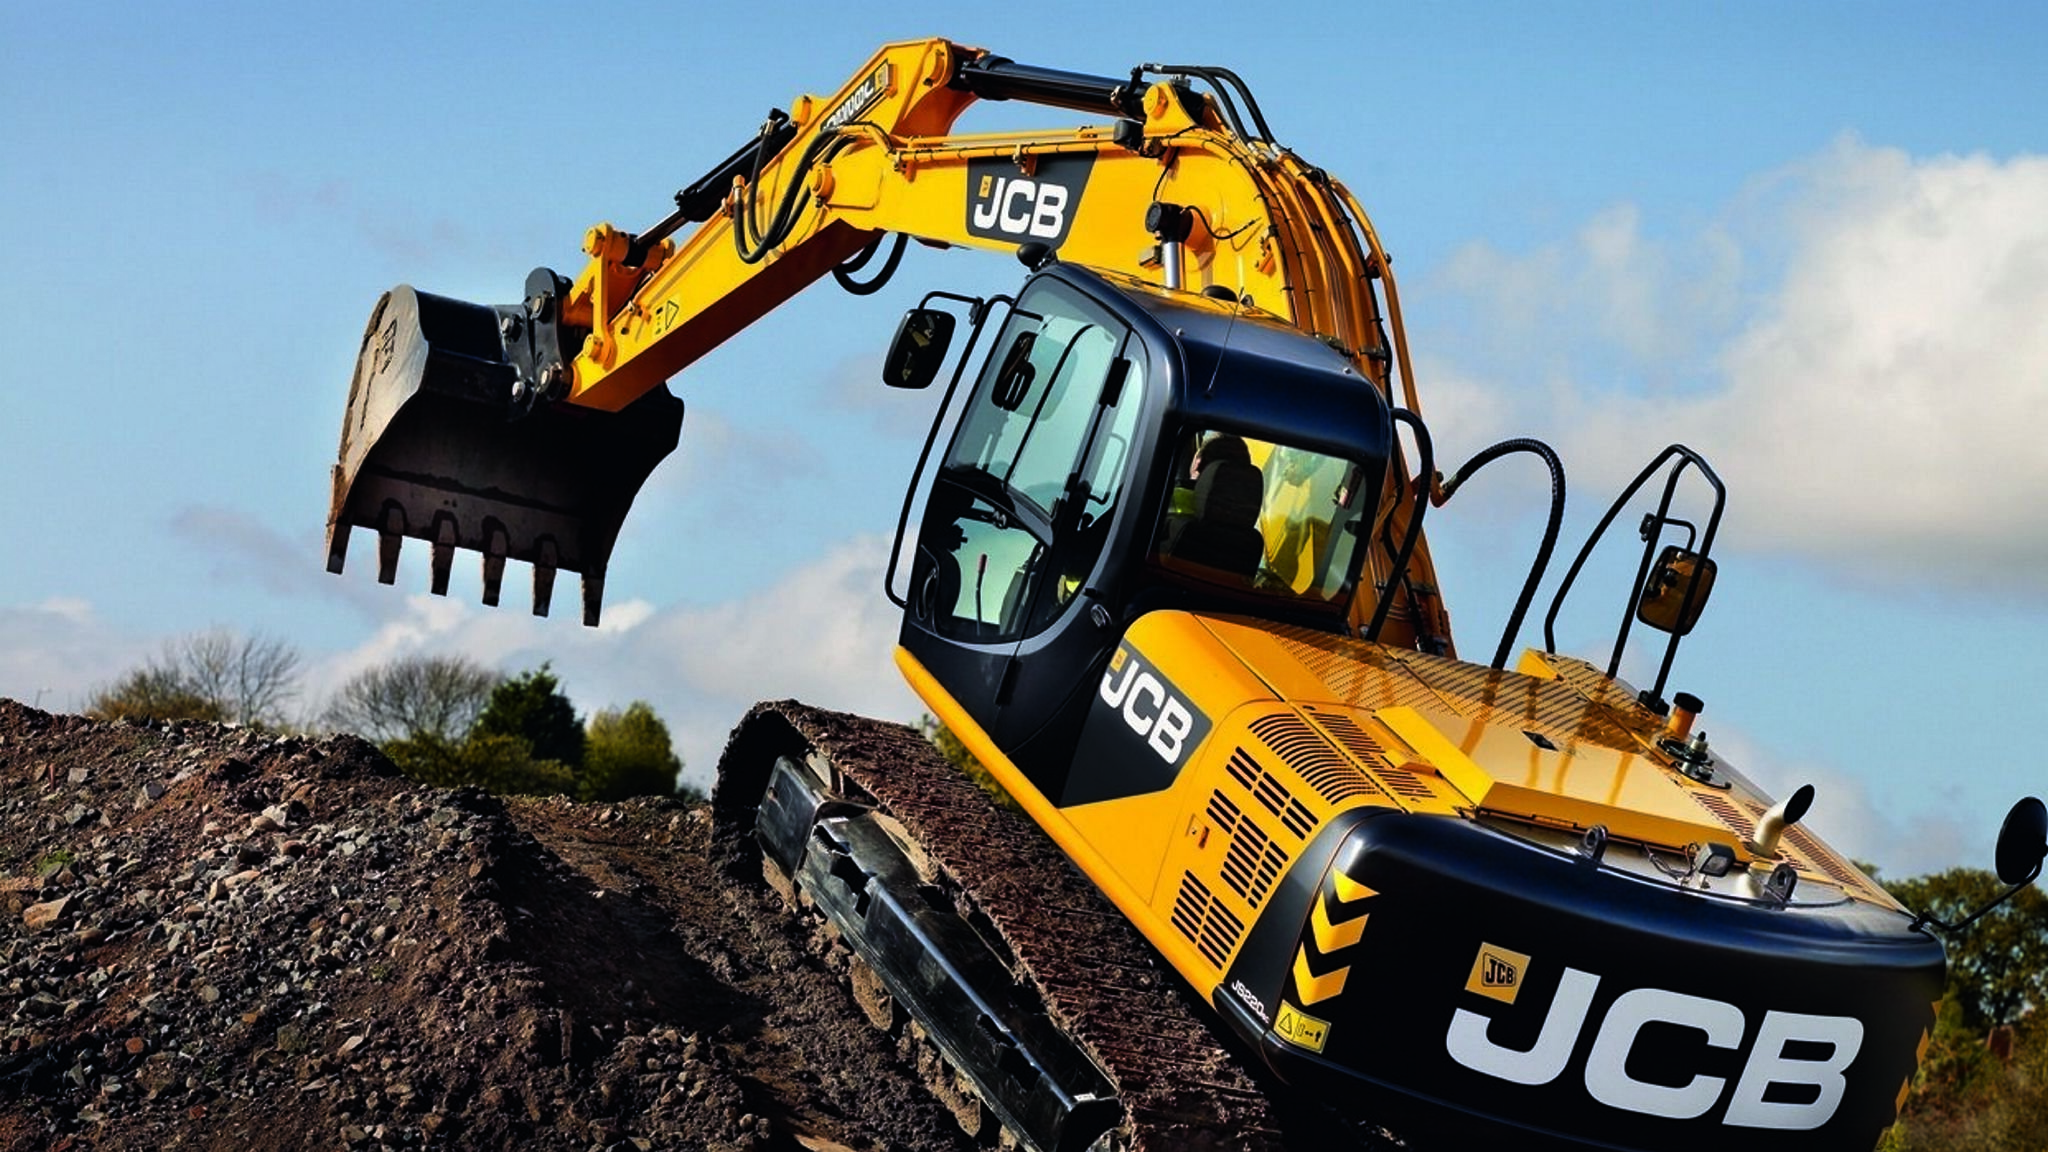 JCB warns that India's banking crisis is hurting demand